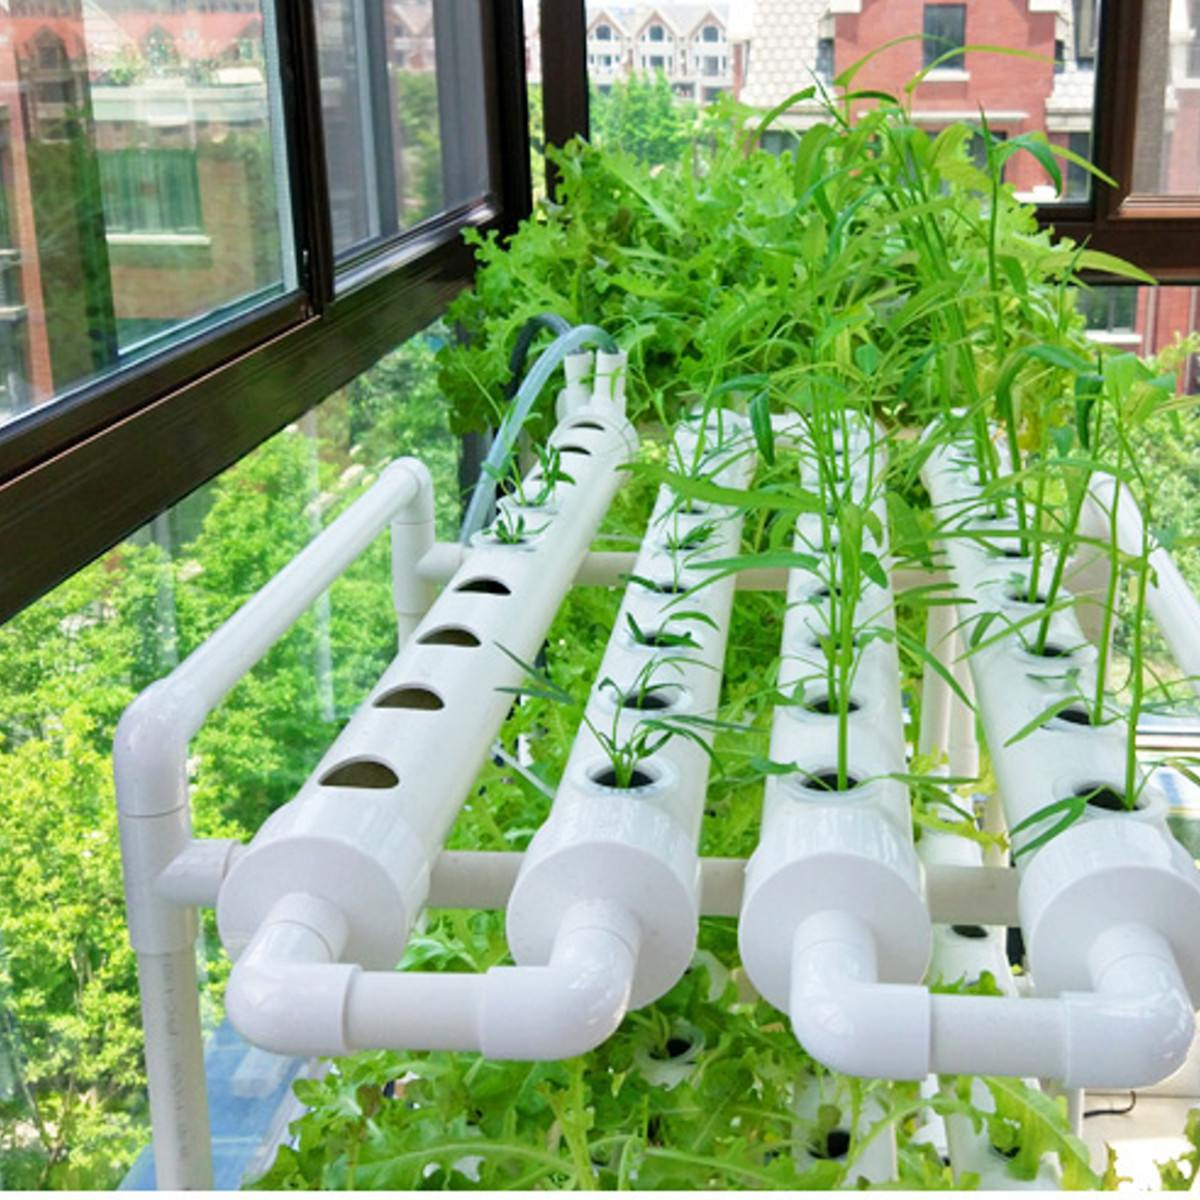 Hydroponic-Rack-Holder Planting-Box Vegetables-Tools Garden Grow Plastic White 220V 36-Sites